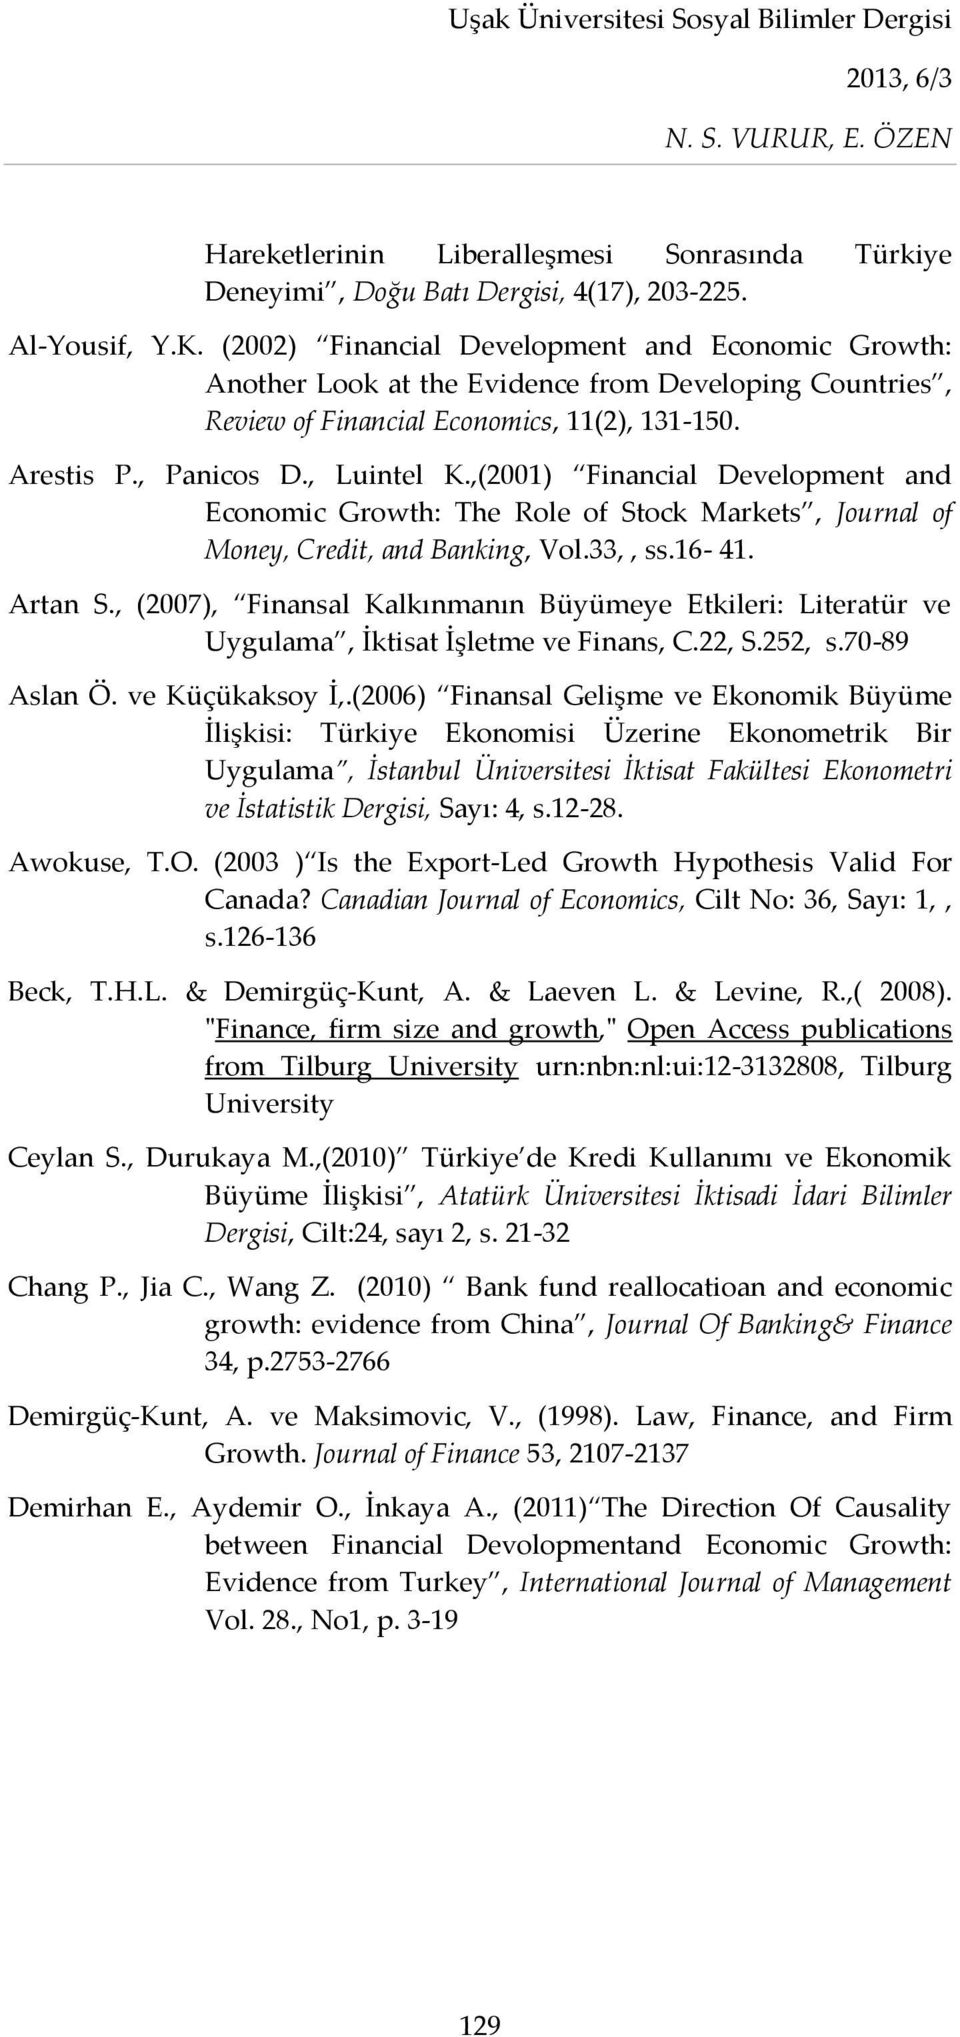 ,(2001) Financial Development and Economic Growth: The Role of Stock Markets, Journal of Money, Credit, and Banking, Vol.33,, ss.16-41. Artan S.